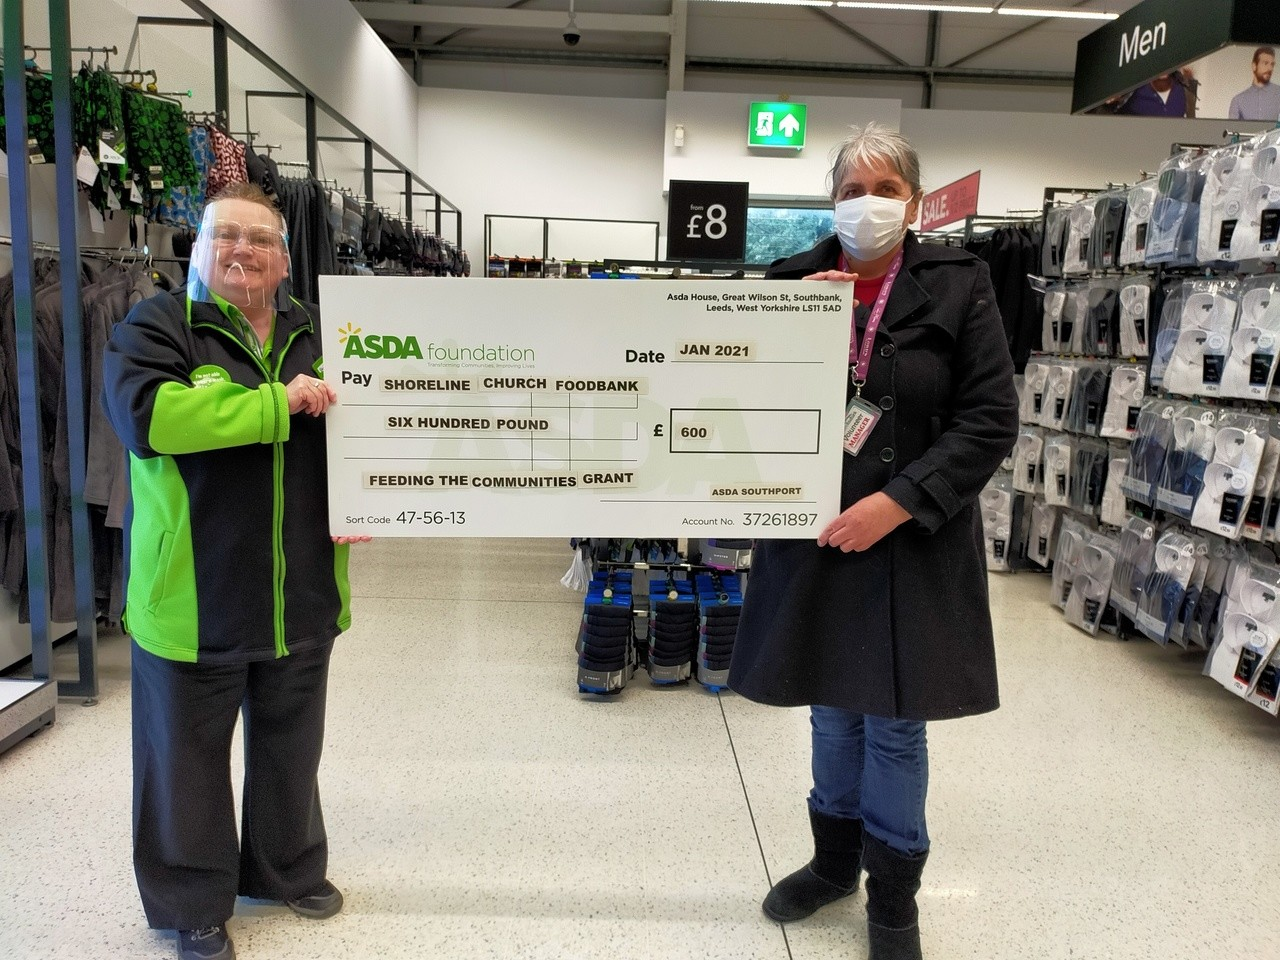 Shoreline Church Foodbank donation | Asda Southport